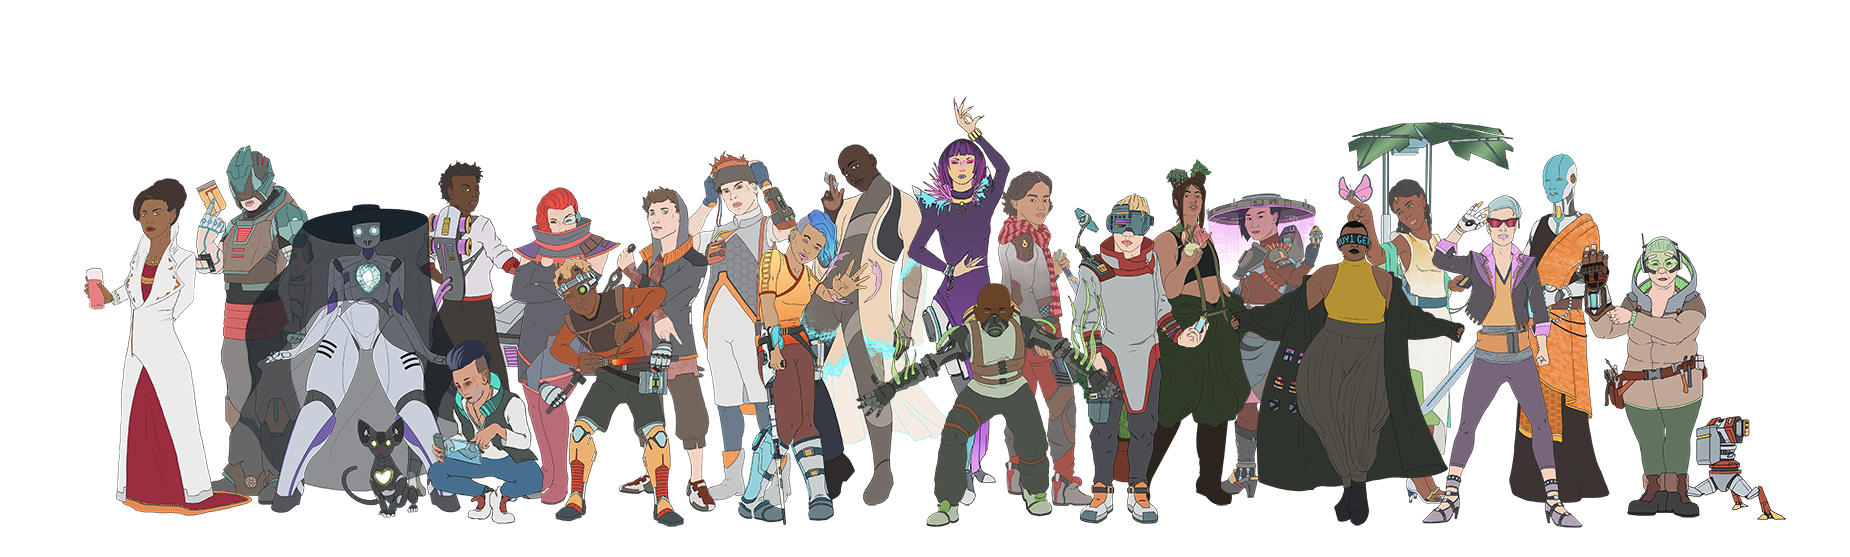 CharacterLineup_1850.png